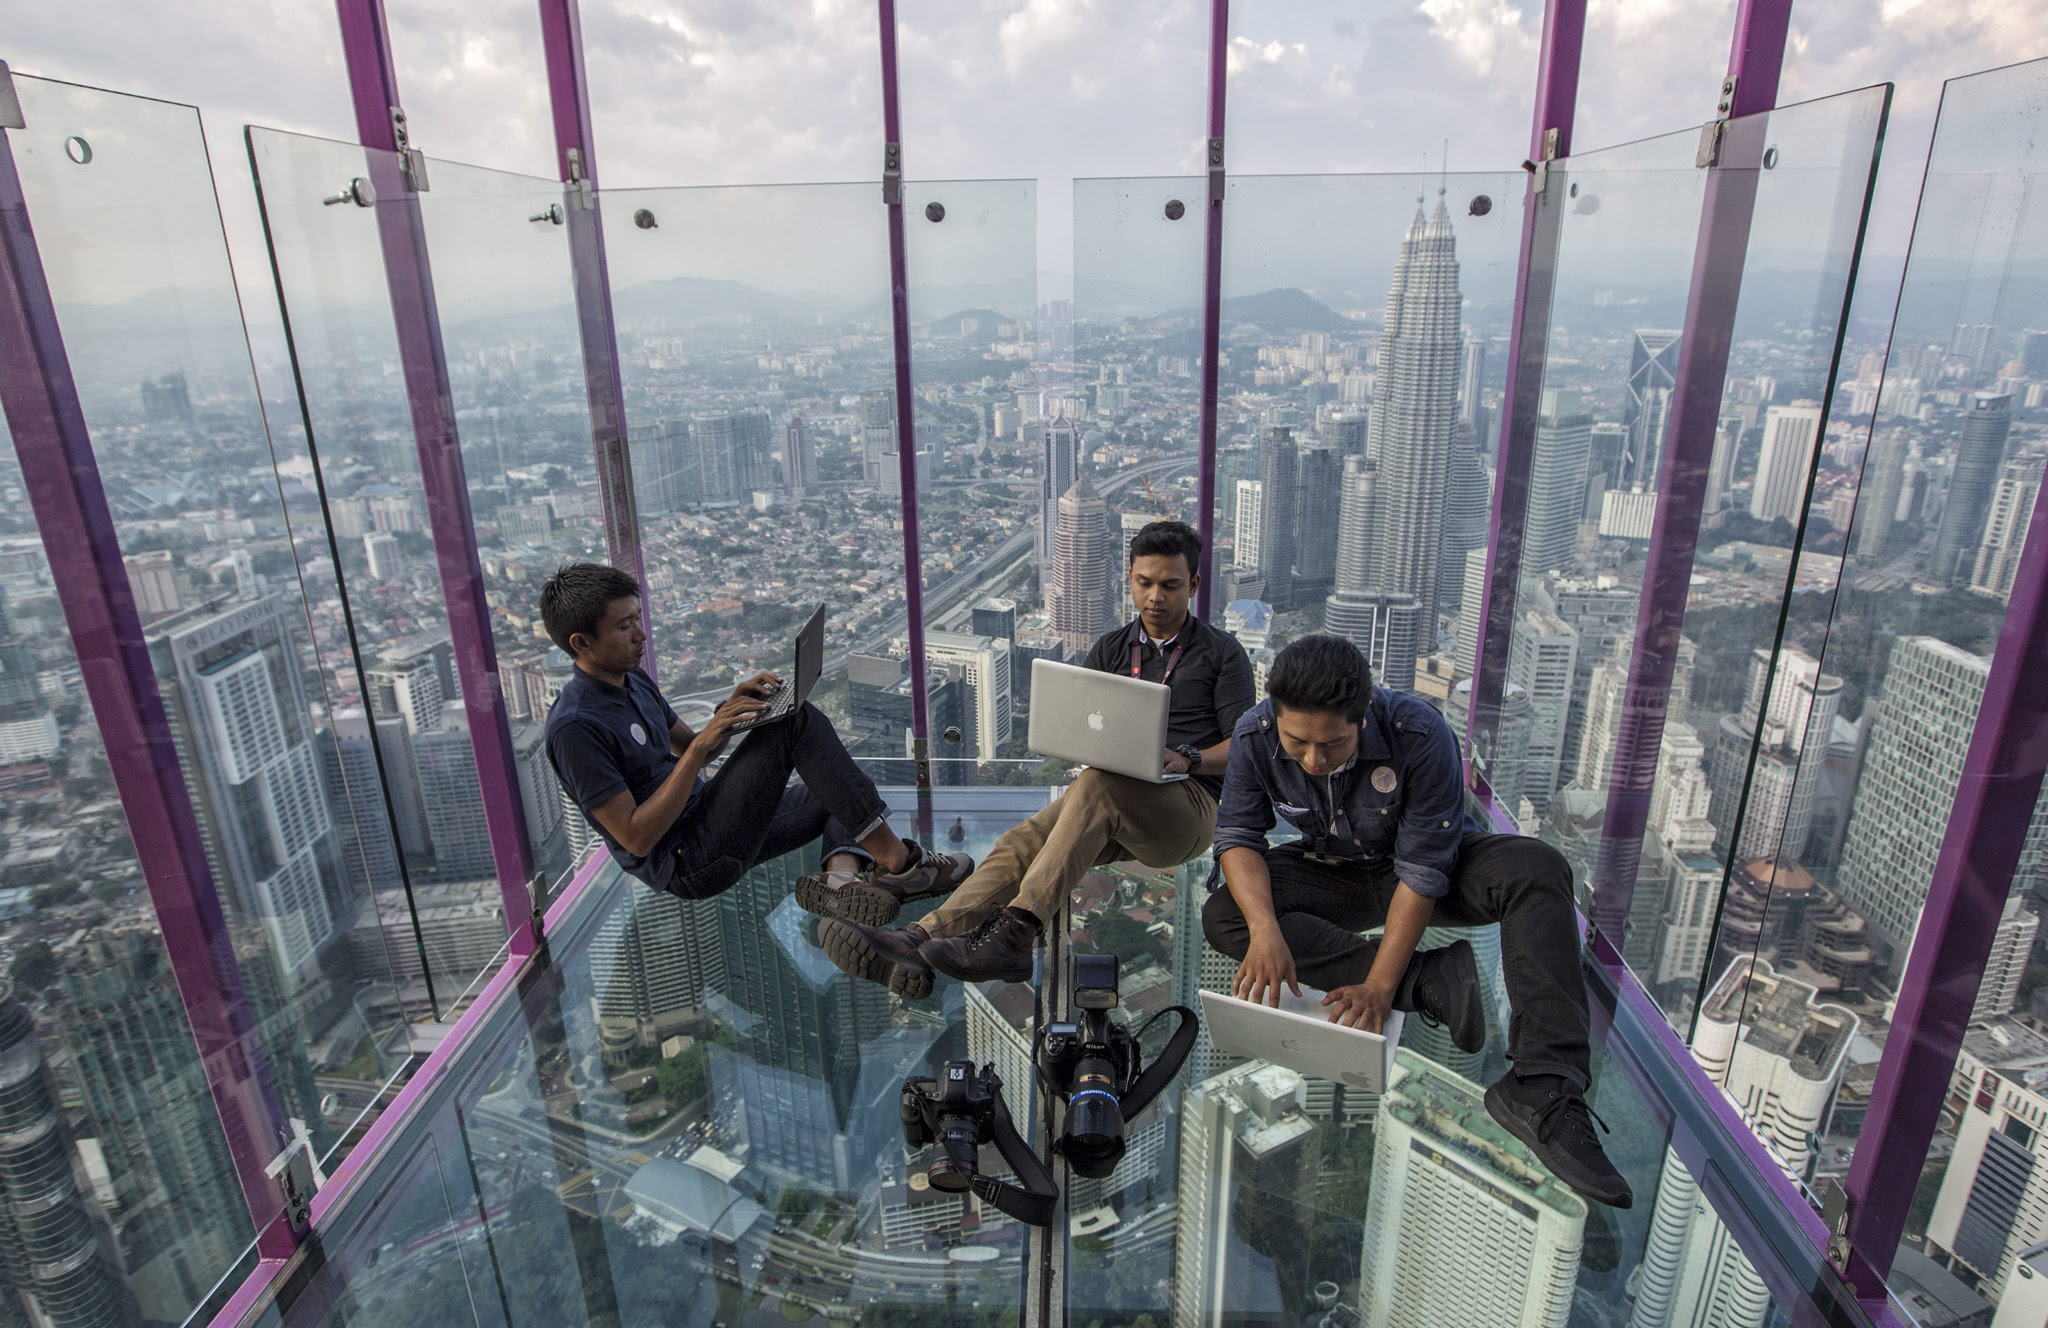 Media members sit against the panoramic view of Kuala Lumpur from a skybox during a media preview at Kuala Lumpur Tower in Kuala Lumpur, Malaysia, 05 May 2016. Skybox, 421 metres above ground level will be the latest tourists attraction at Kuala Lumpur Tower, the 7th tallest freestanding tower in the world.